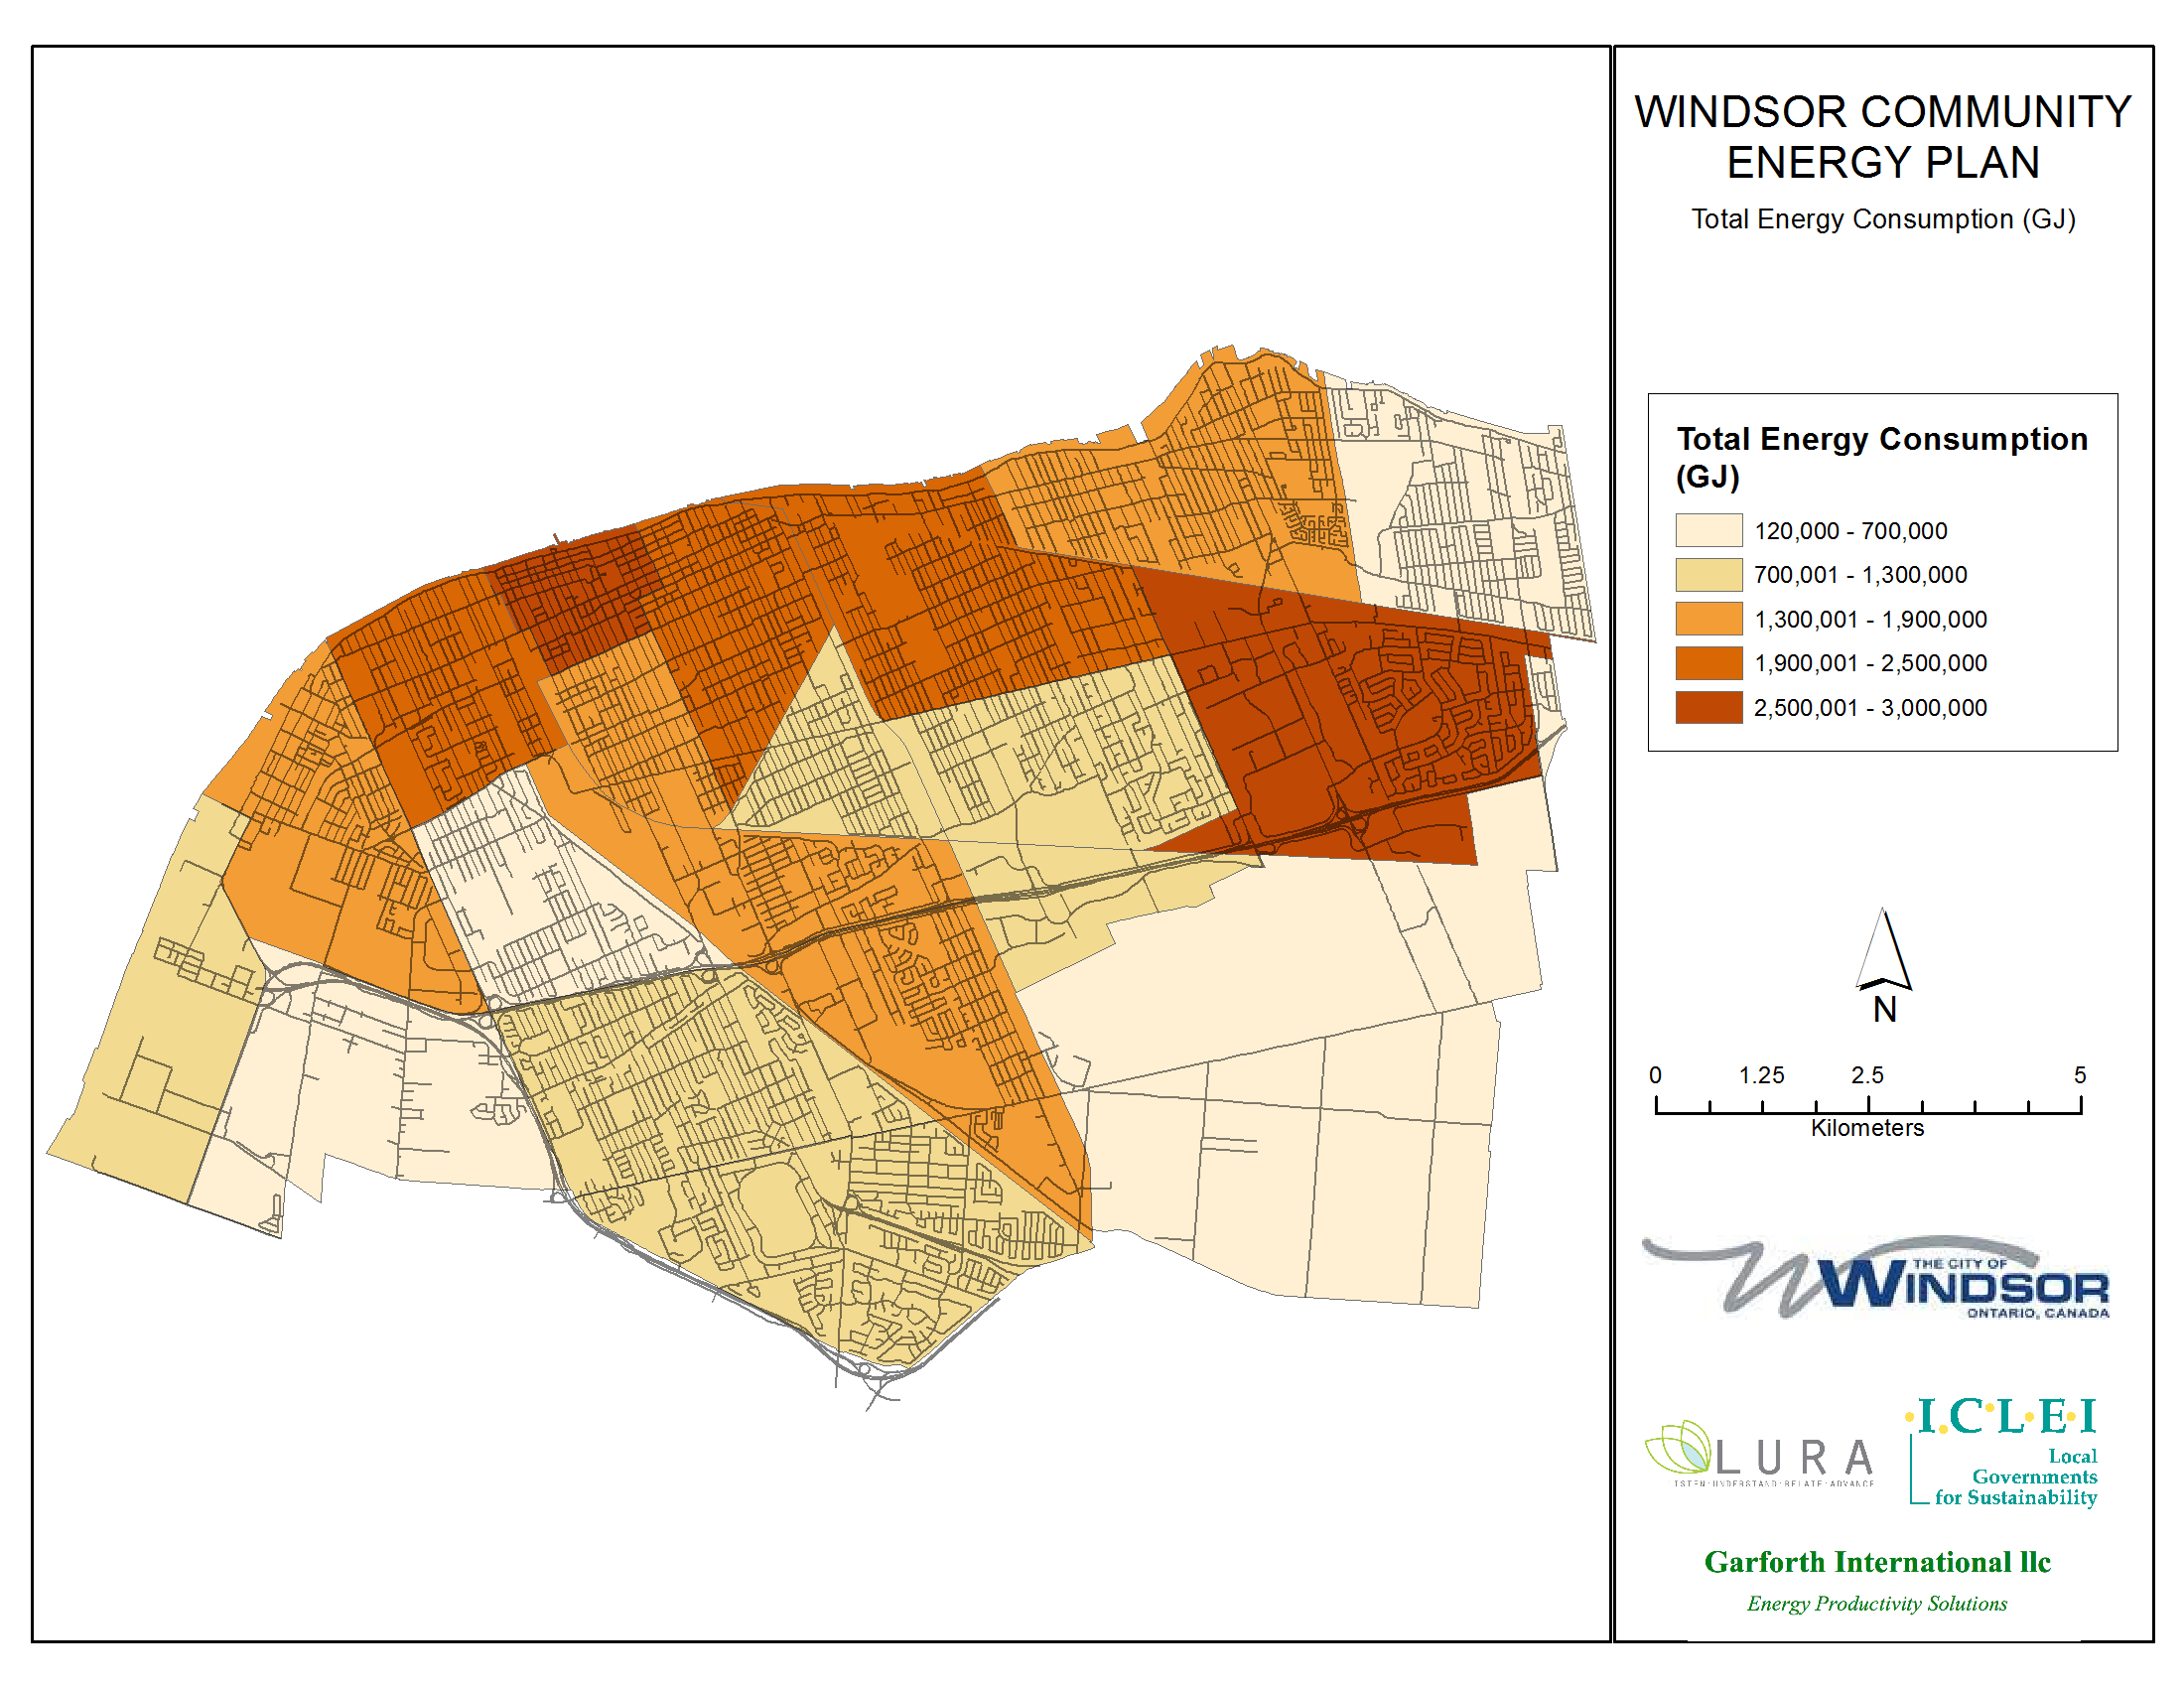 Thumbnail map of total energy use within the City of Windsor